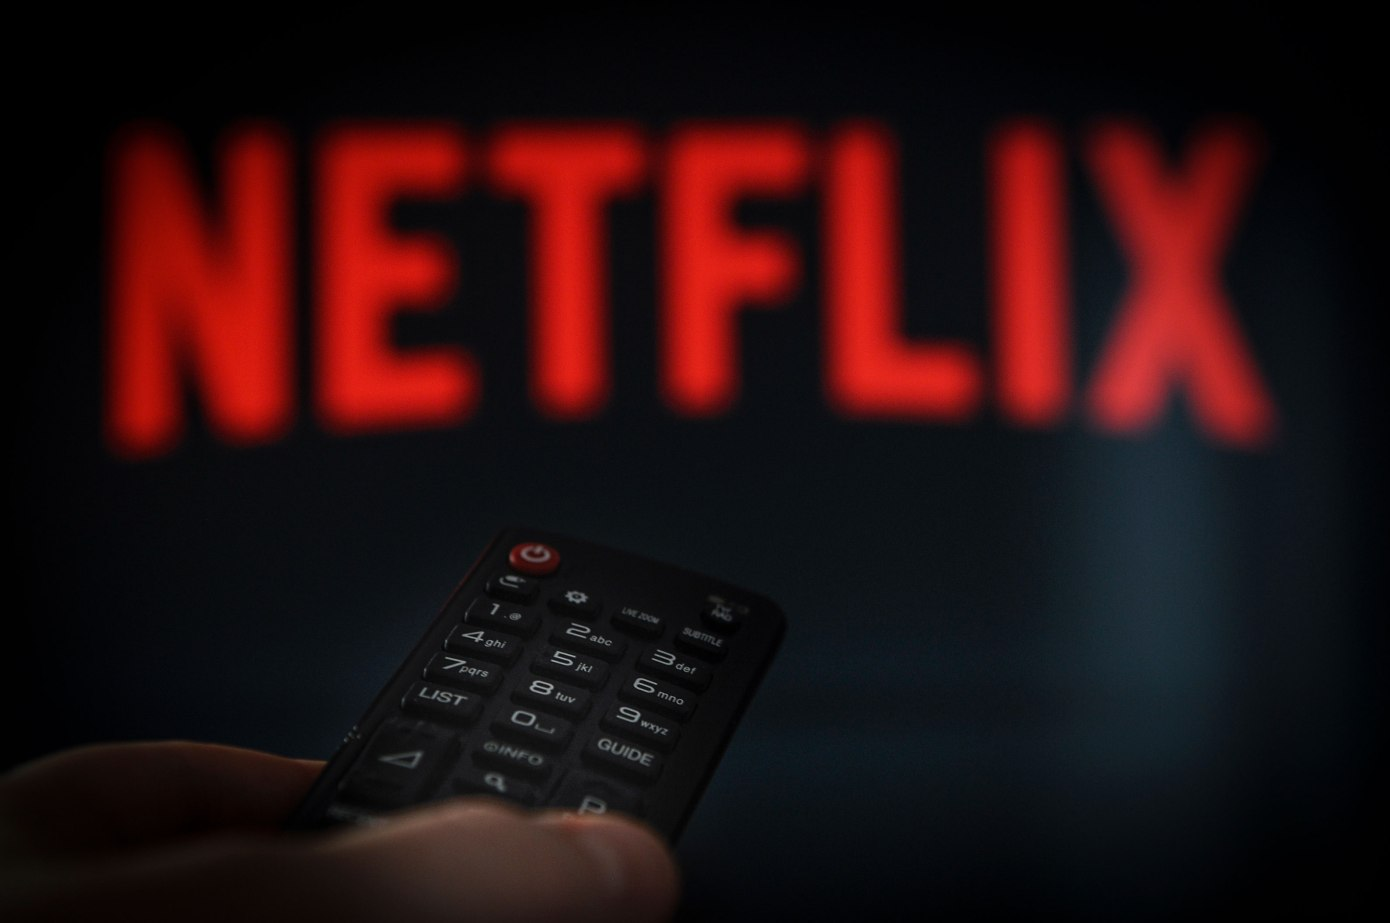 Netflix tests video promos in between episodes, much to viewers dislike